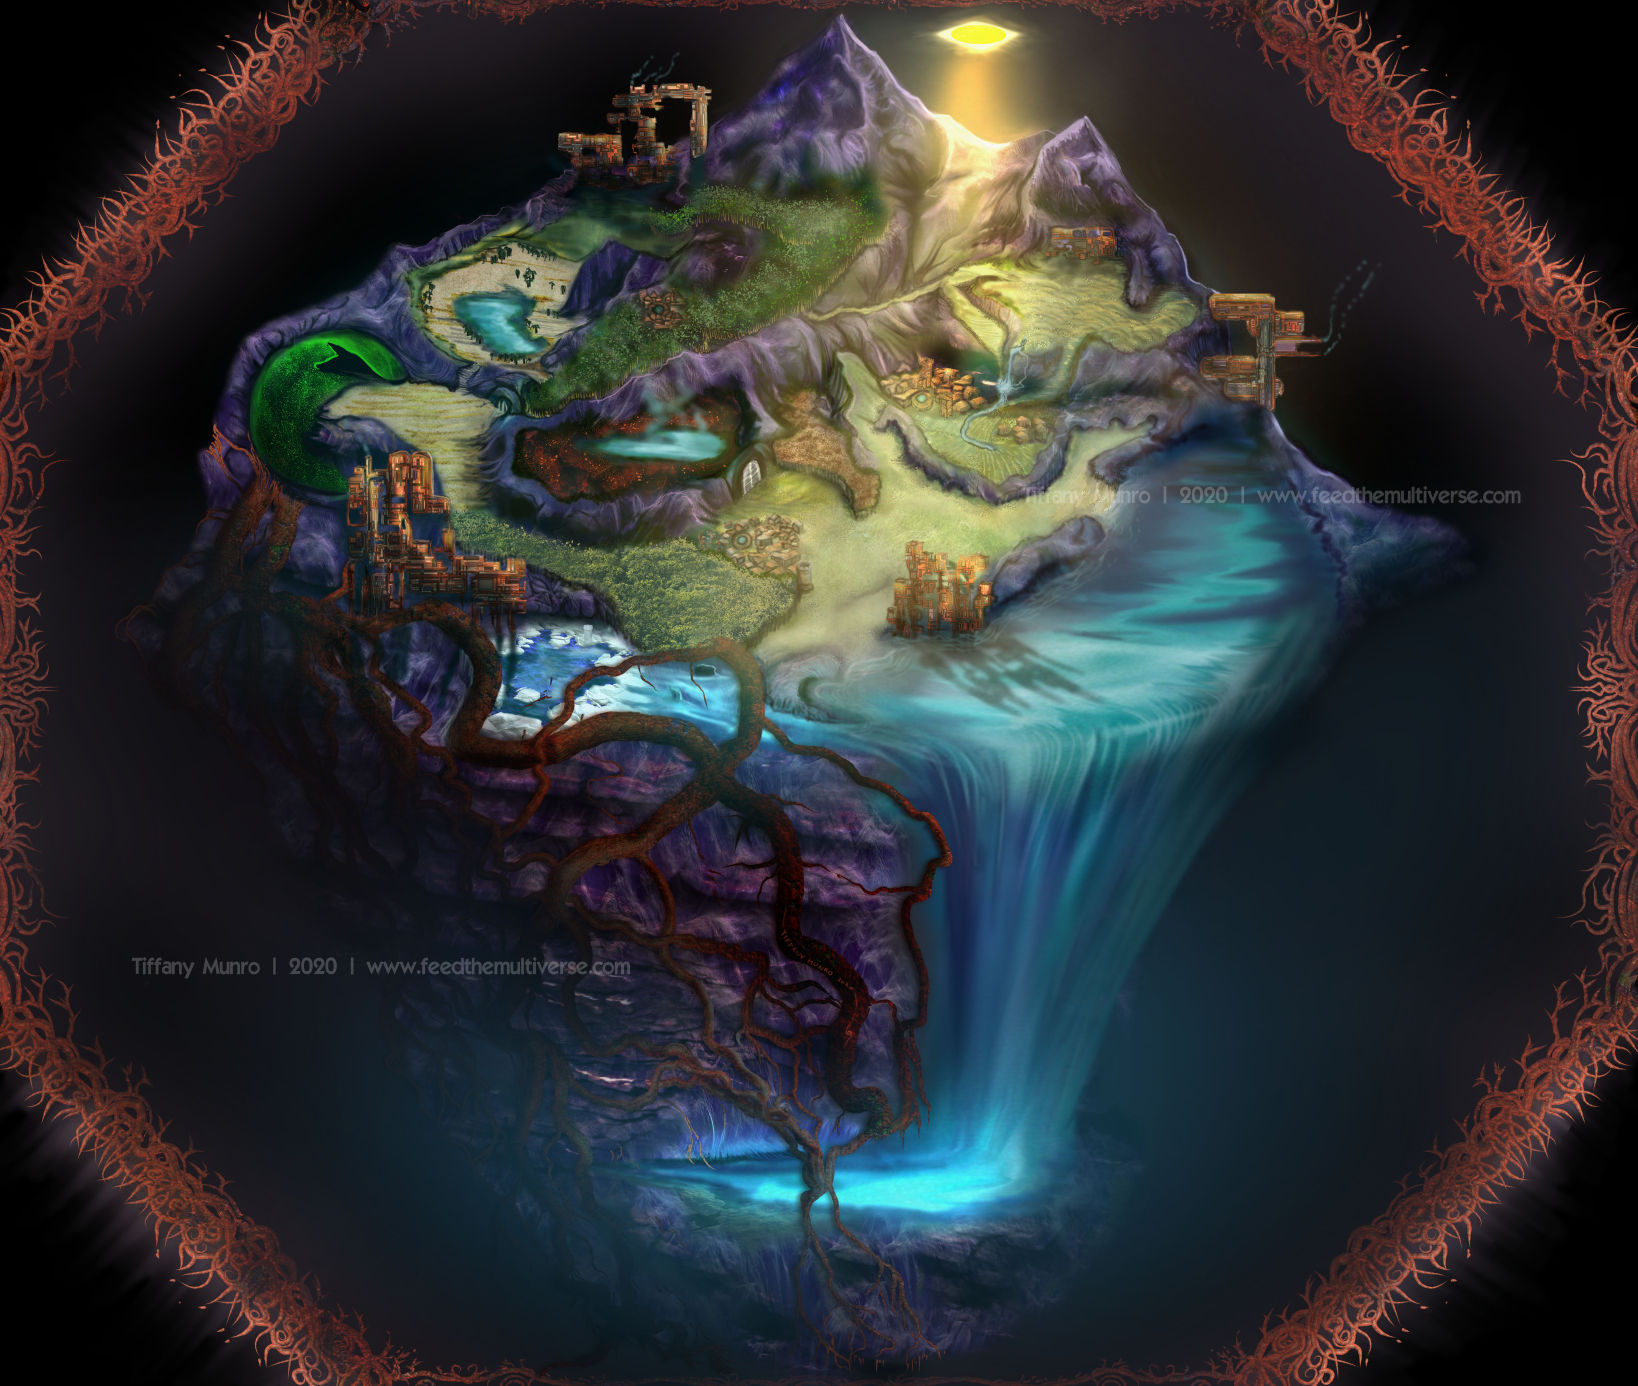 Surreal pyramid fantasy painting world one of a kind RPG map waterfall in microcosmic enclosed world with veins and magic sphere, flat sun, domain